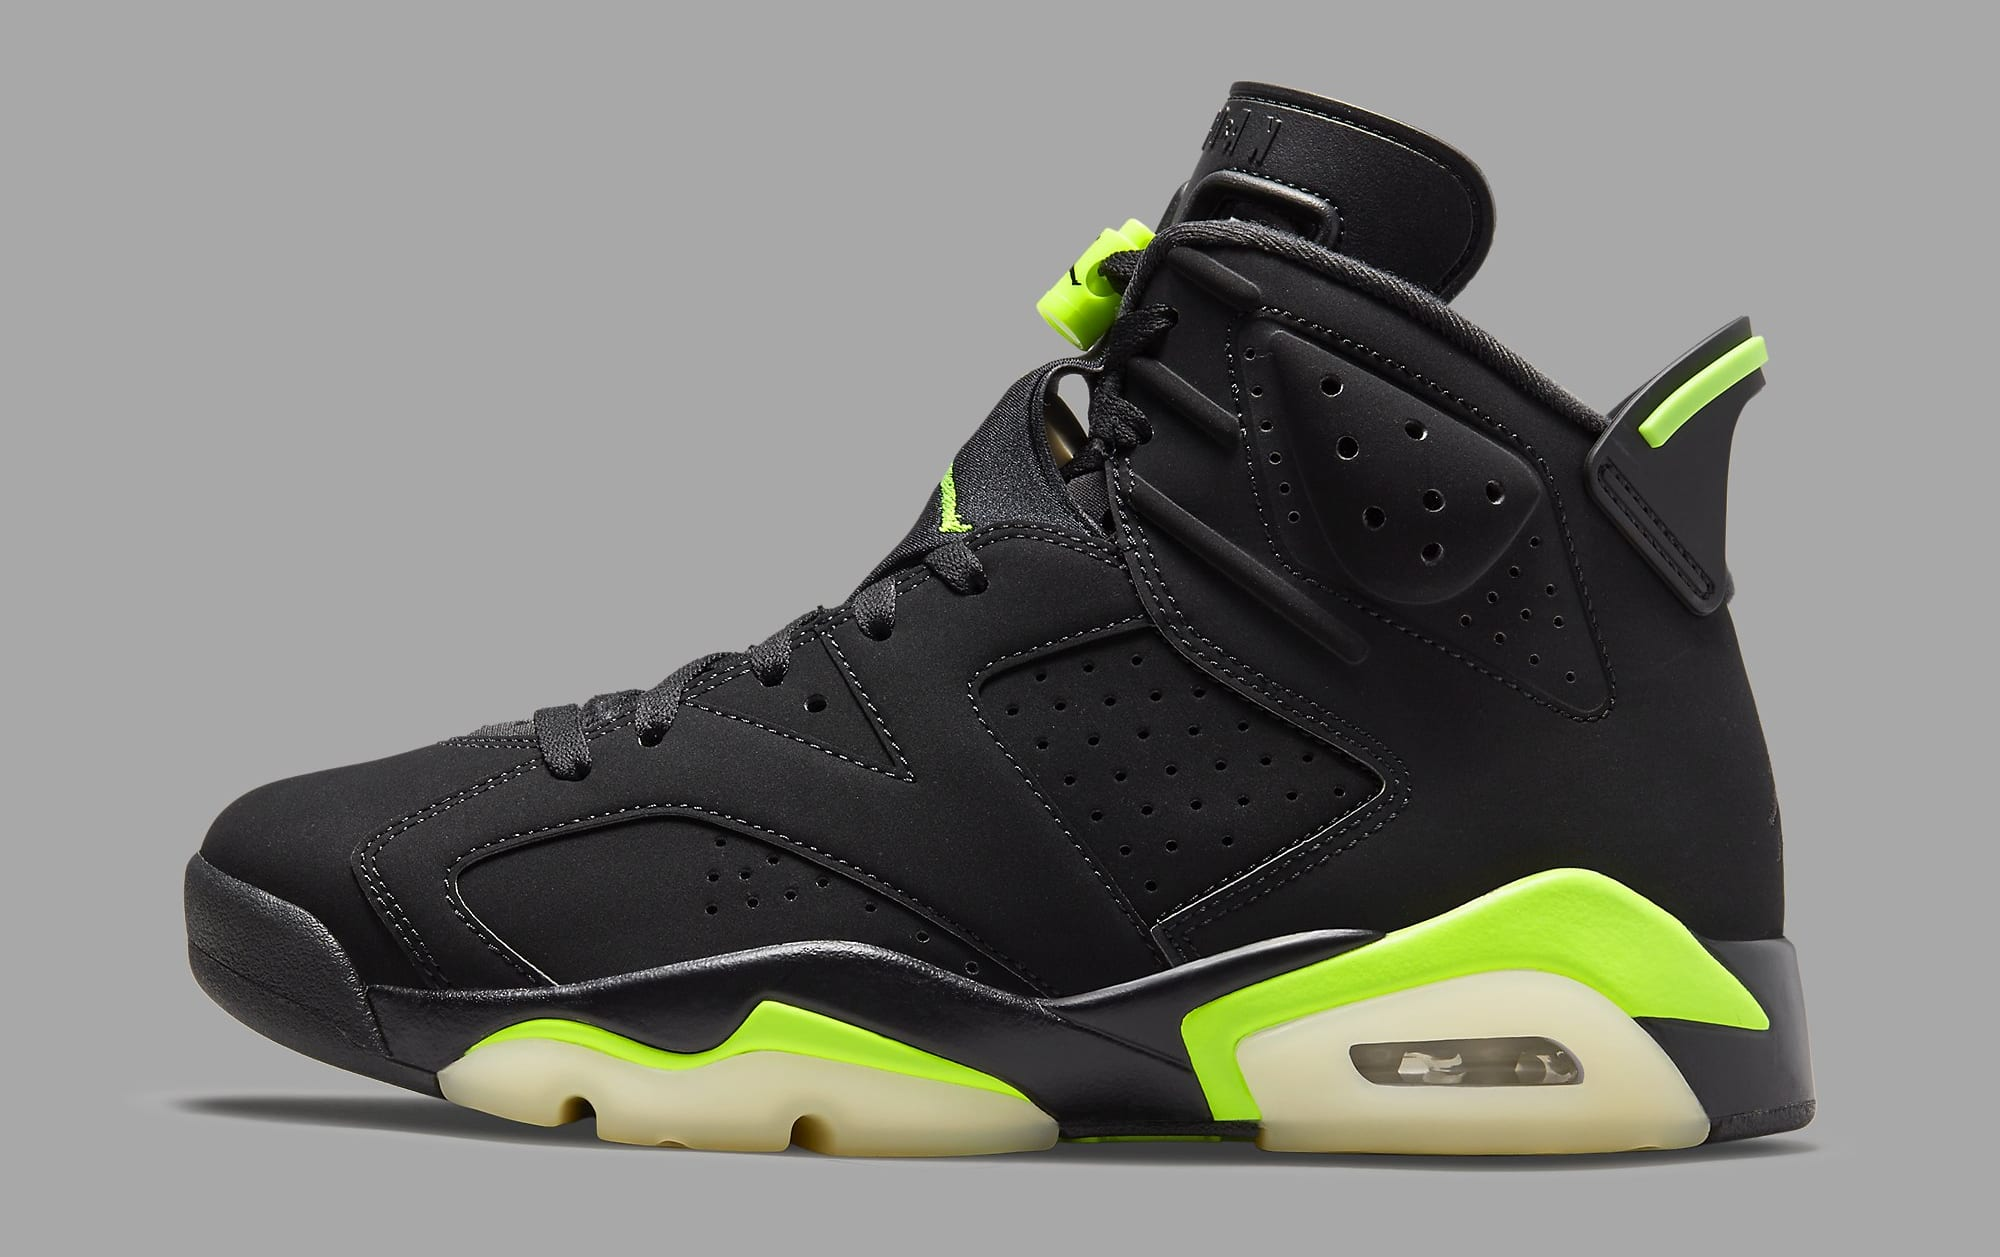 Air Jordan 6 Retro 'Electric Green' CT8529-003 Lateral